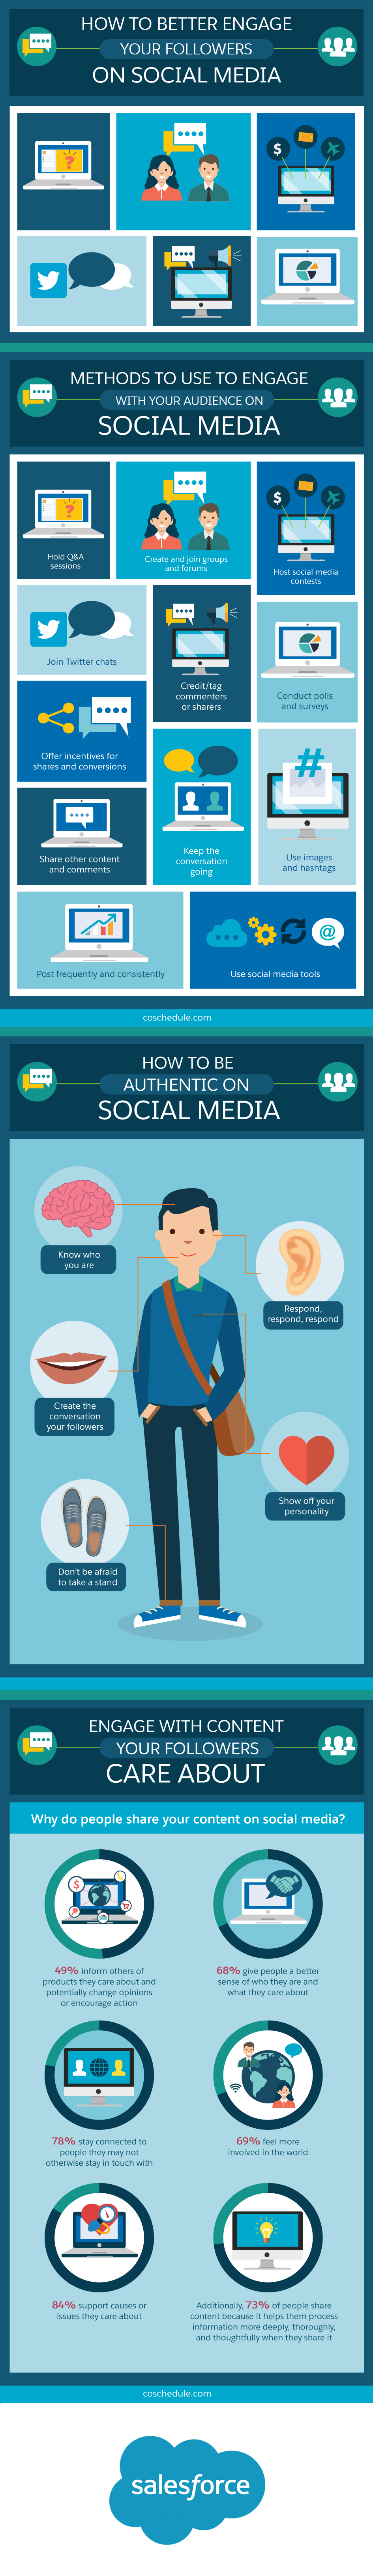 How to Better Engage Your Followers on Social Media